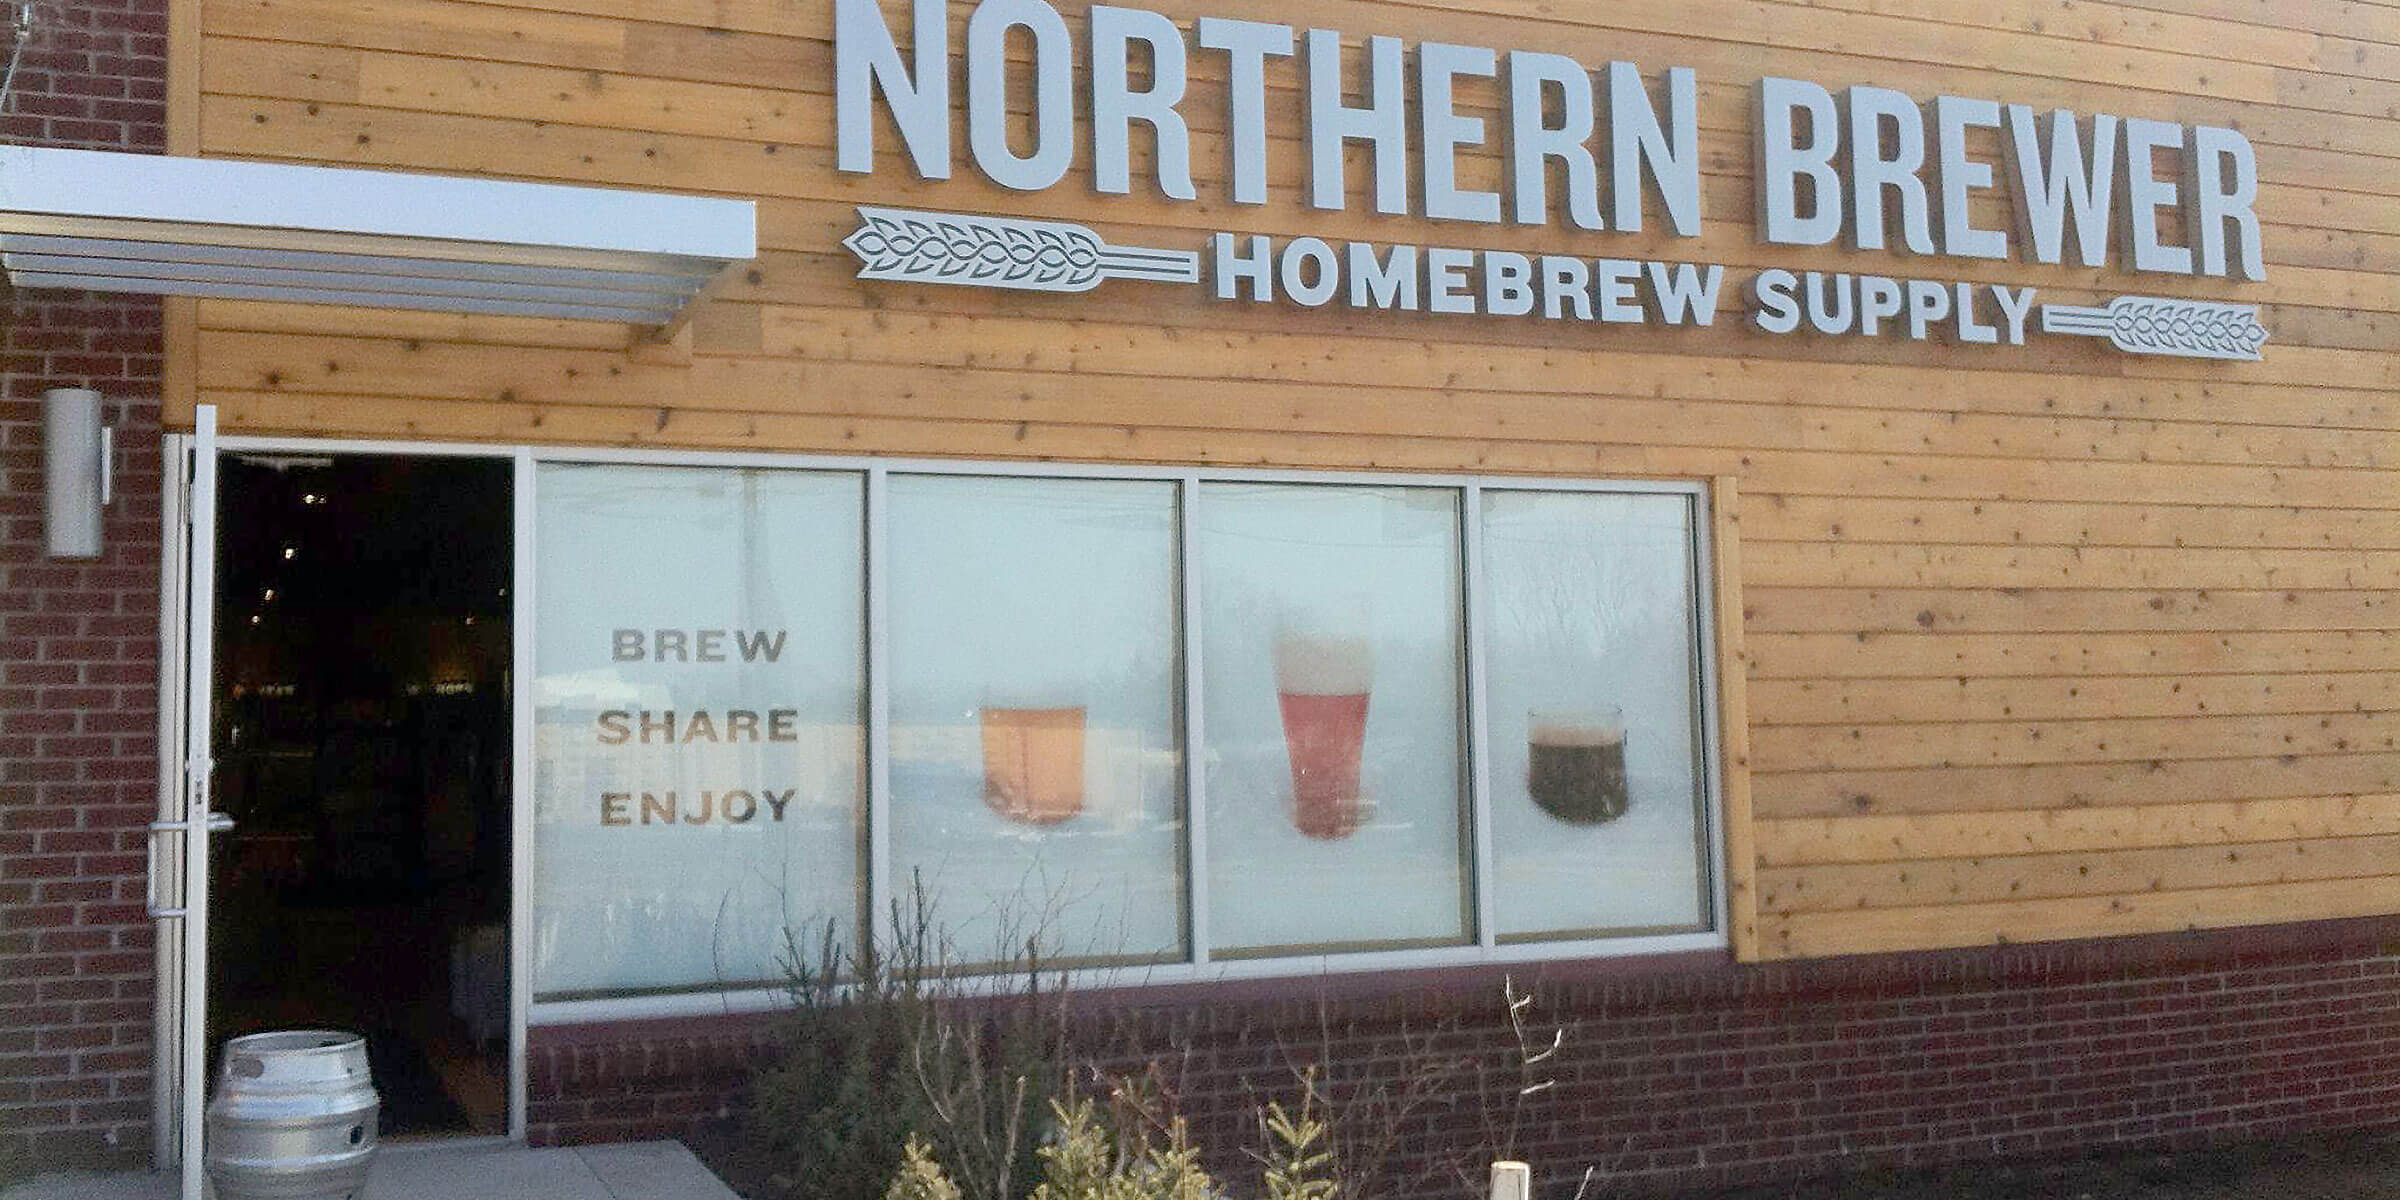 Outside the Entrance to a Northern Brewer Homebrew Supply Retail Store